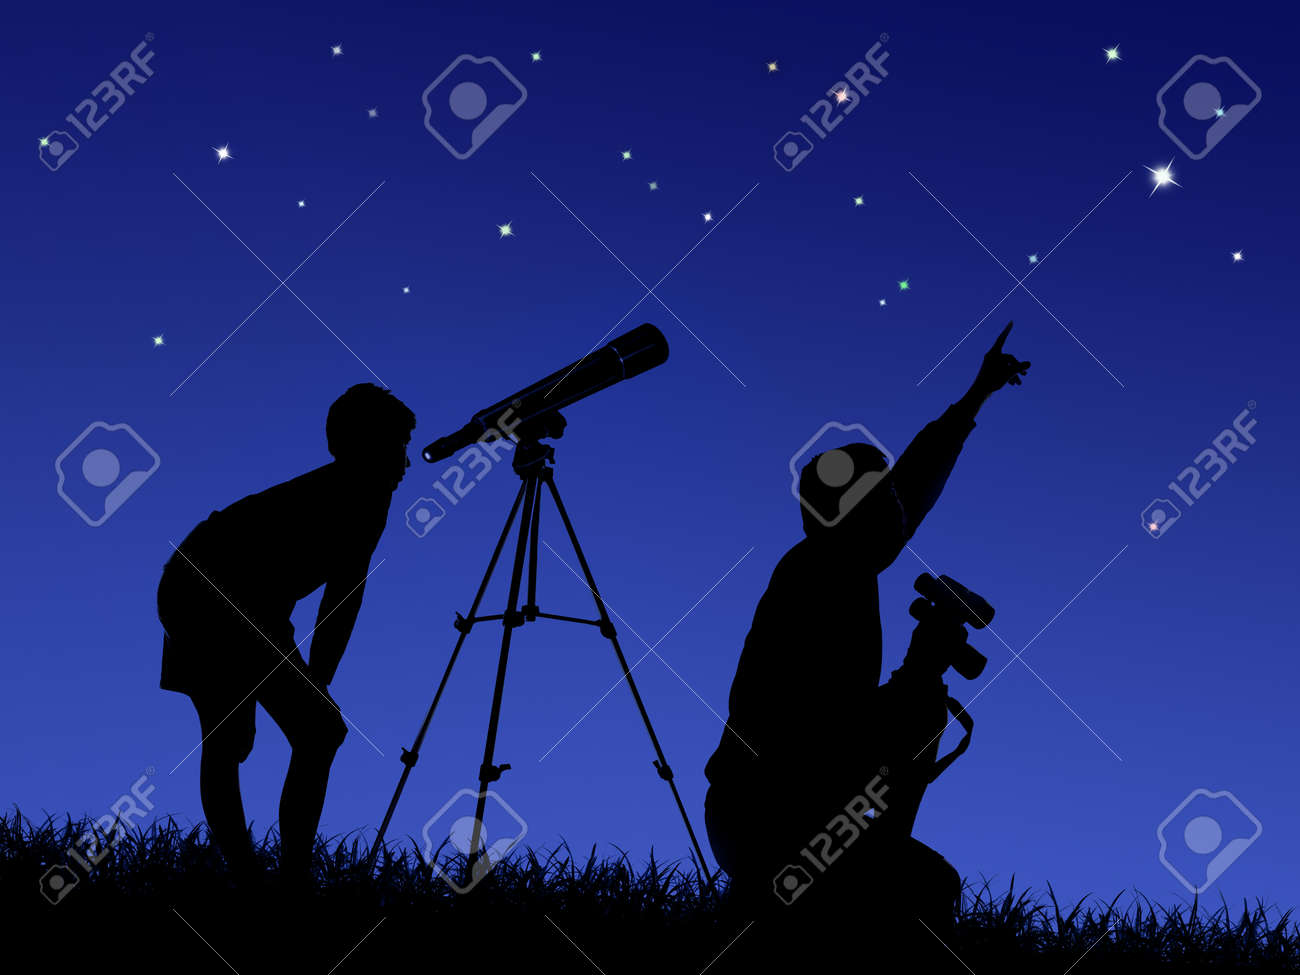 father and son study the starry sky through a telescope on the lawn - 122796799